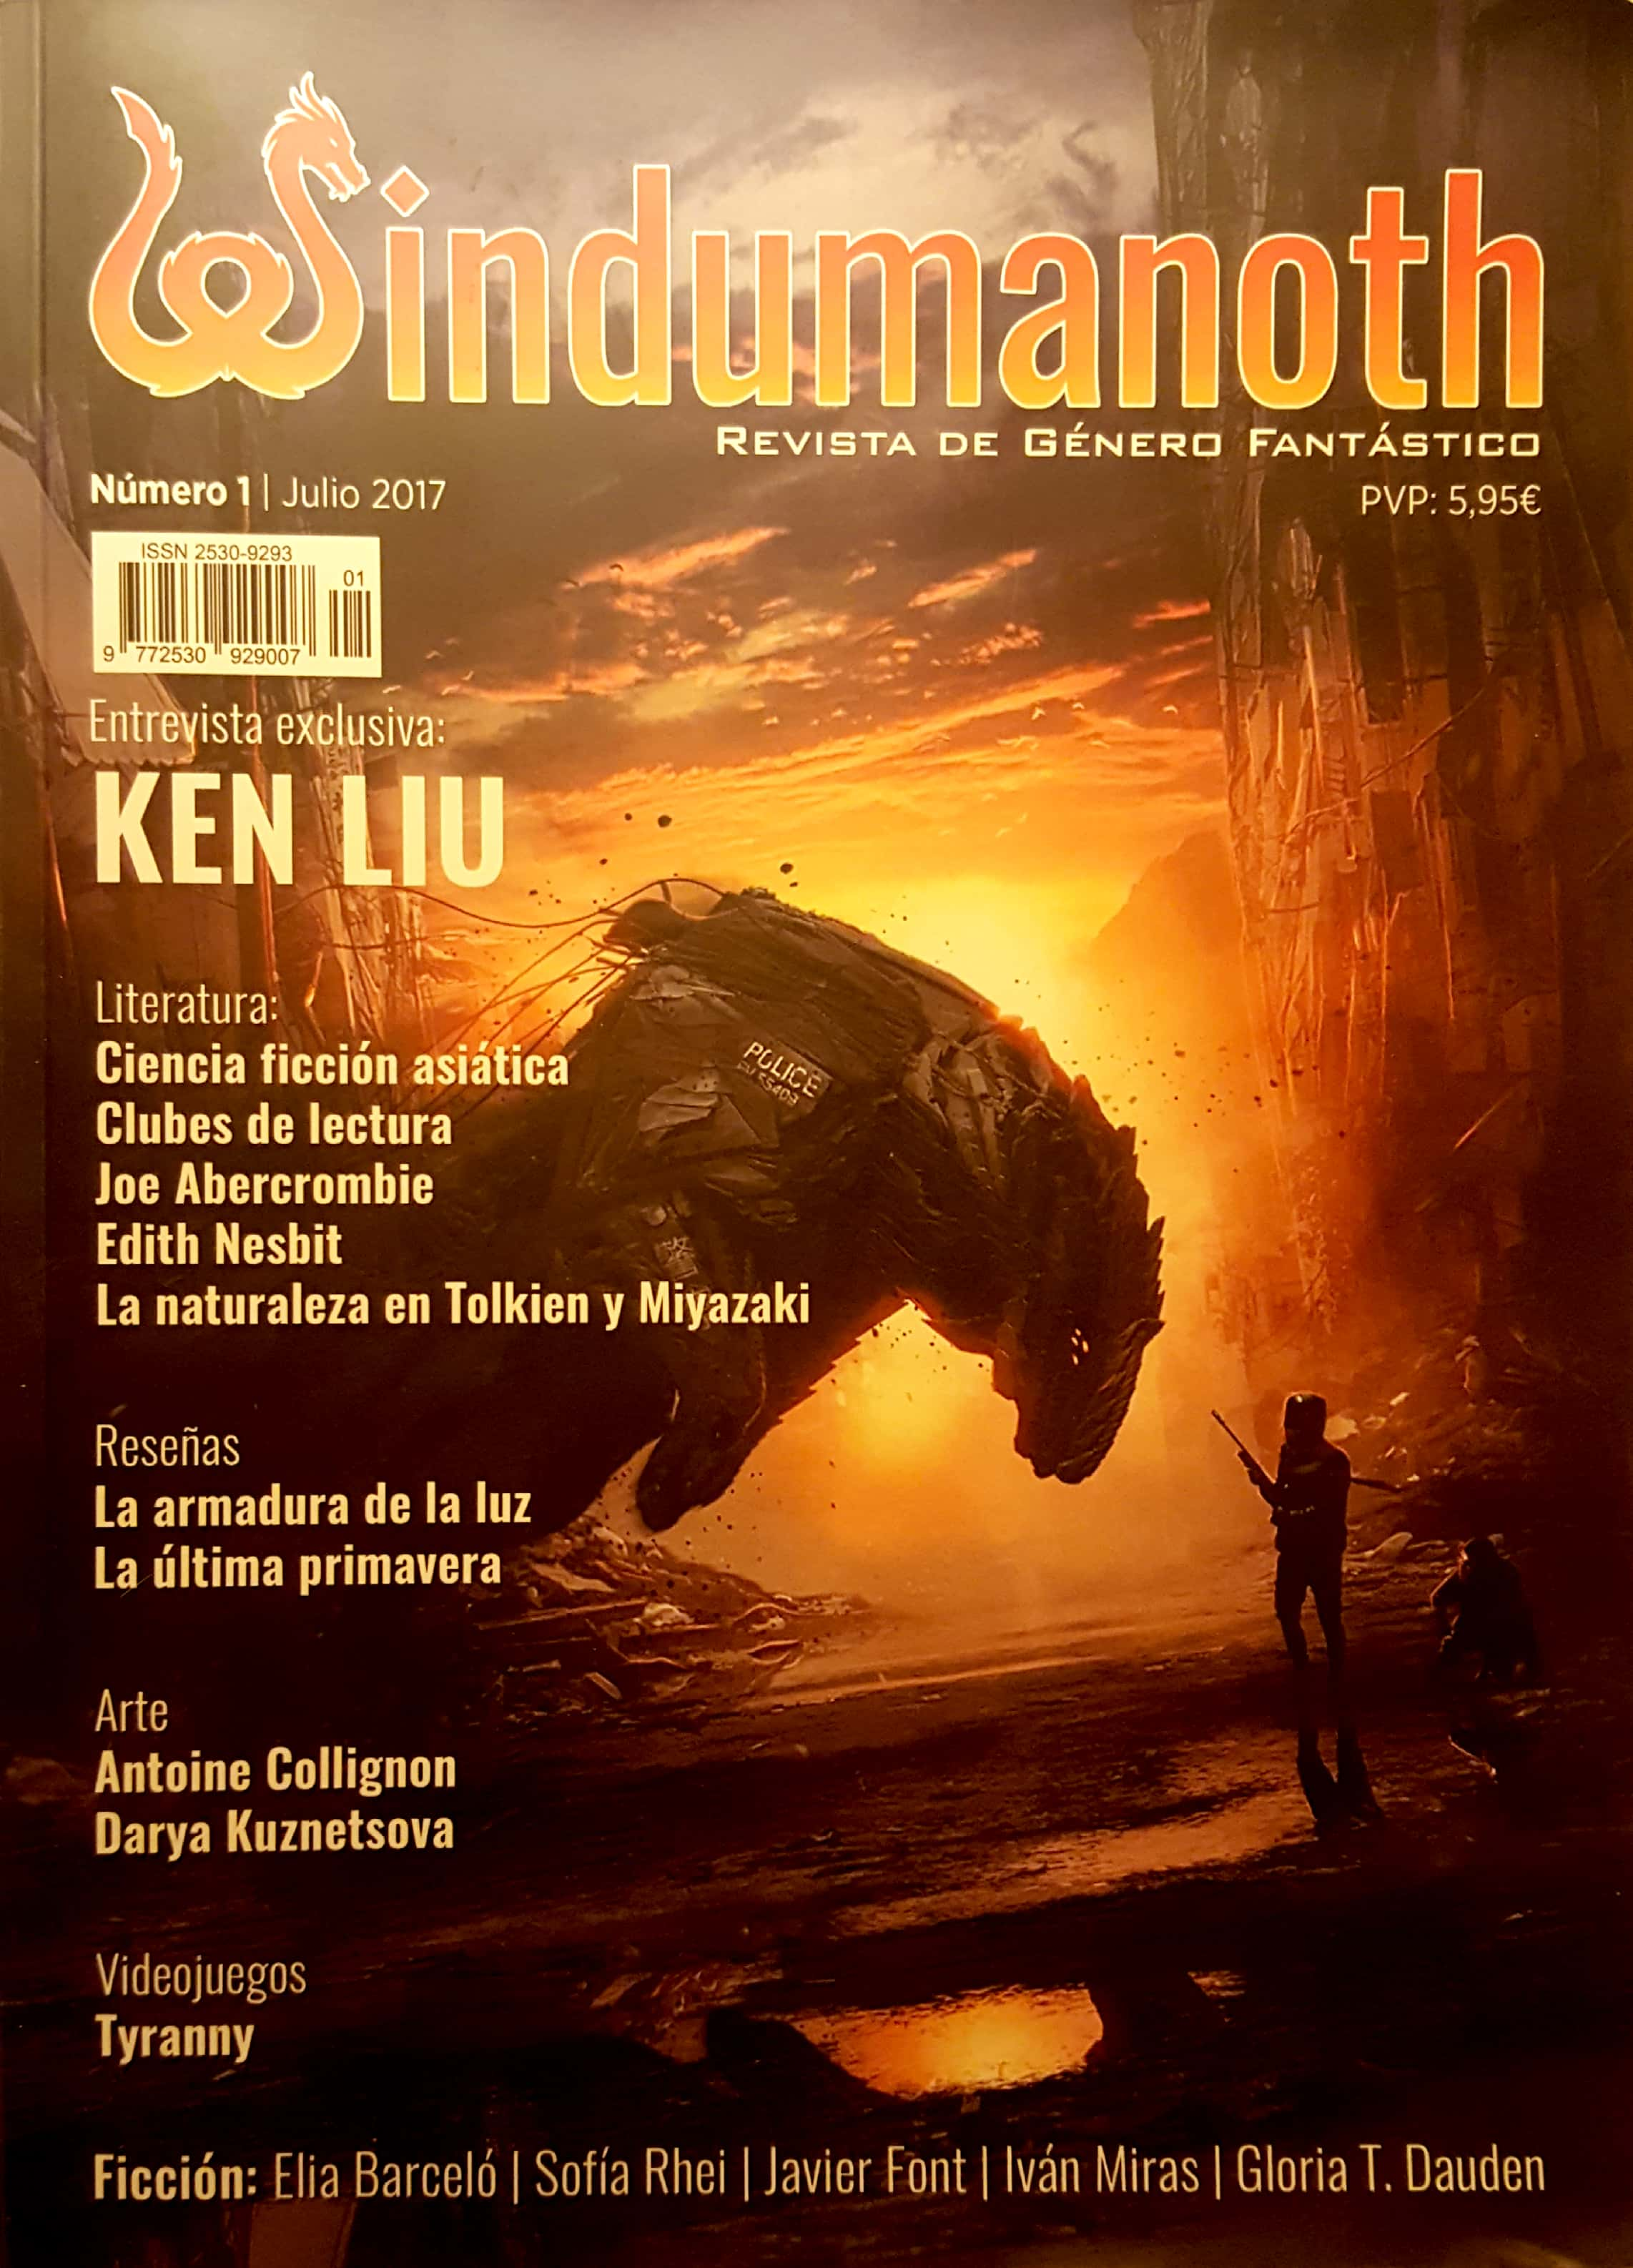 Revista Windumanoth 1